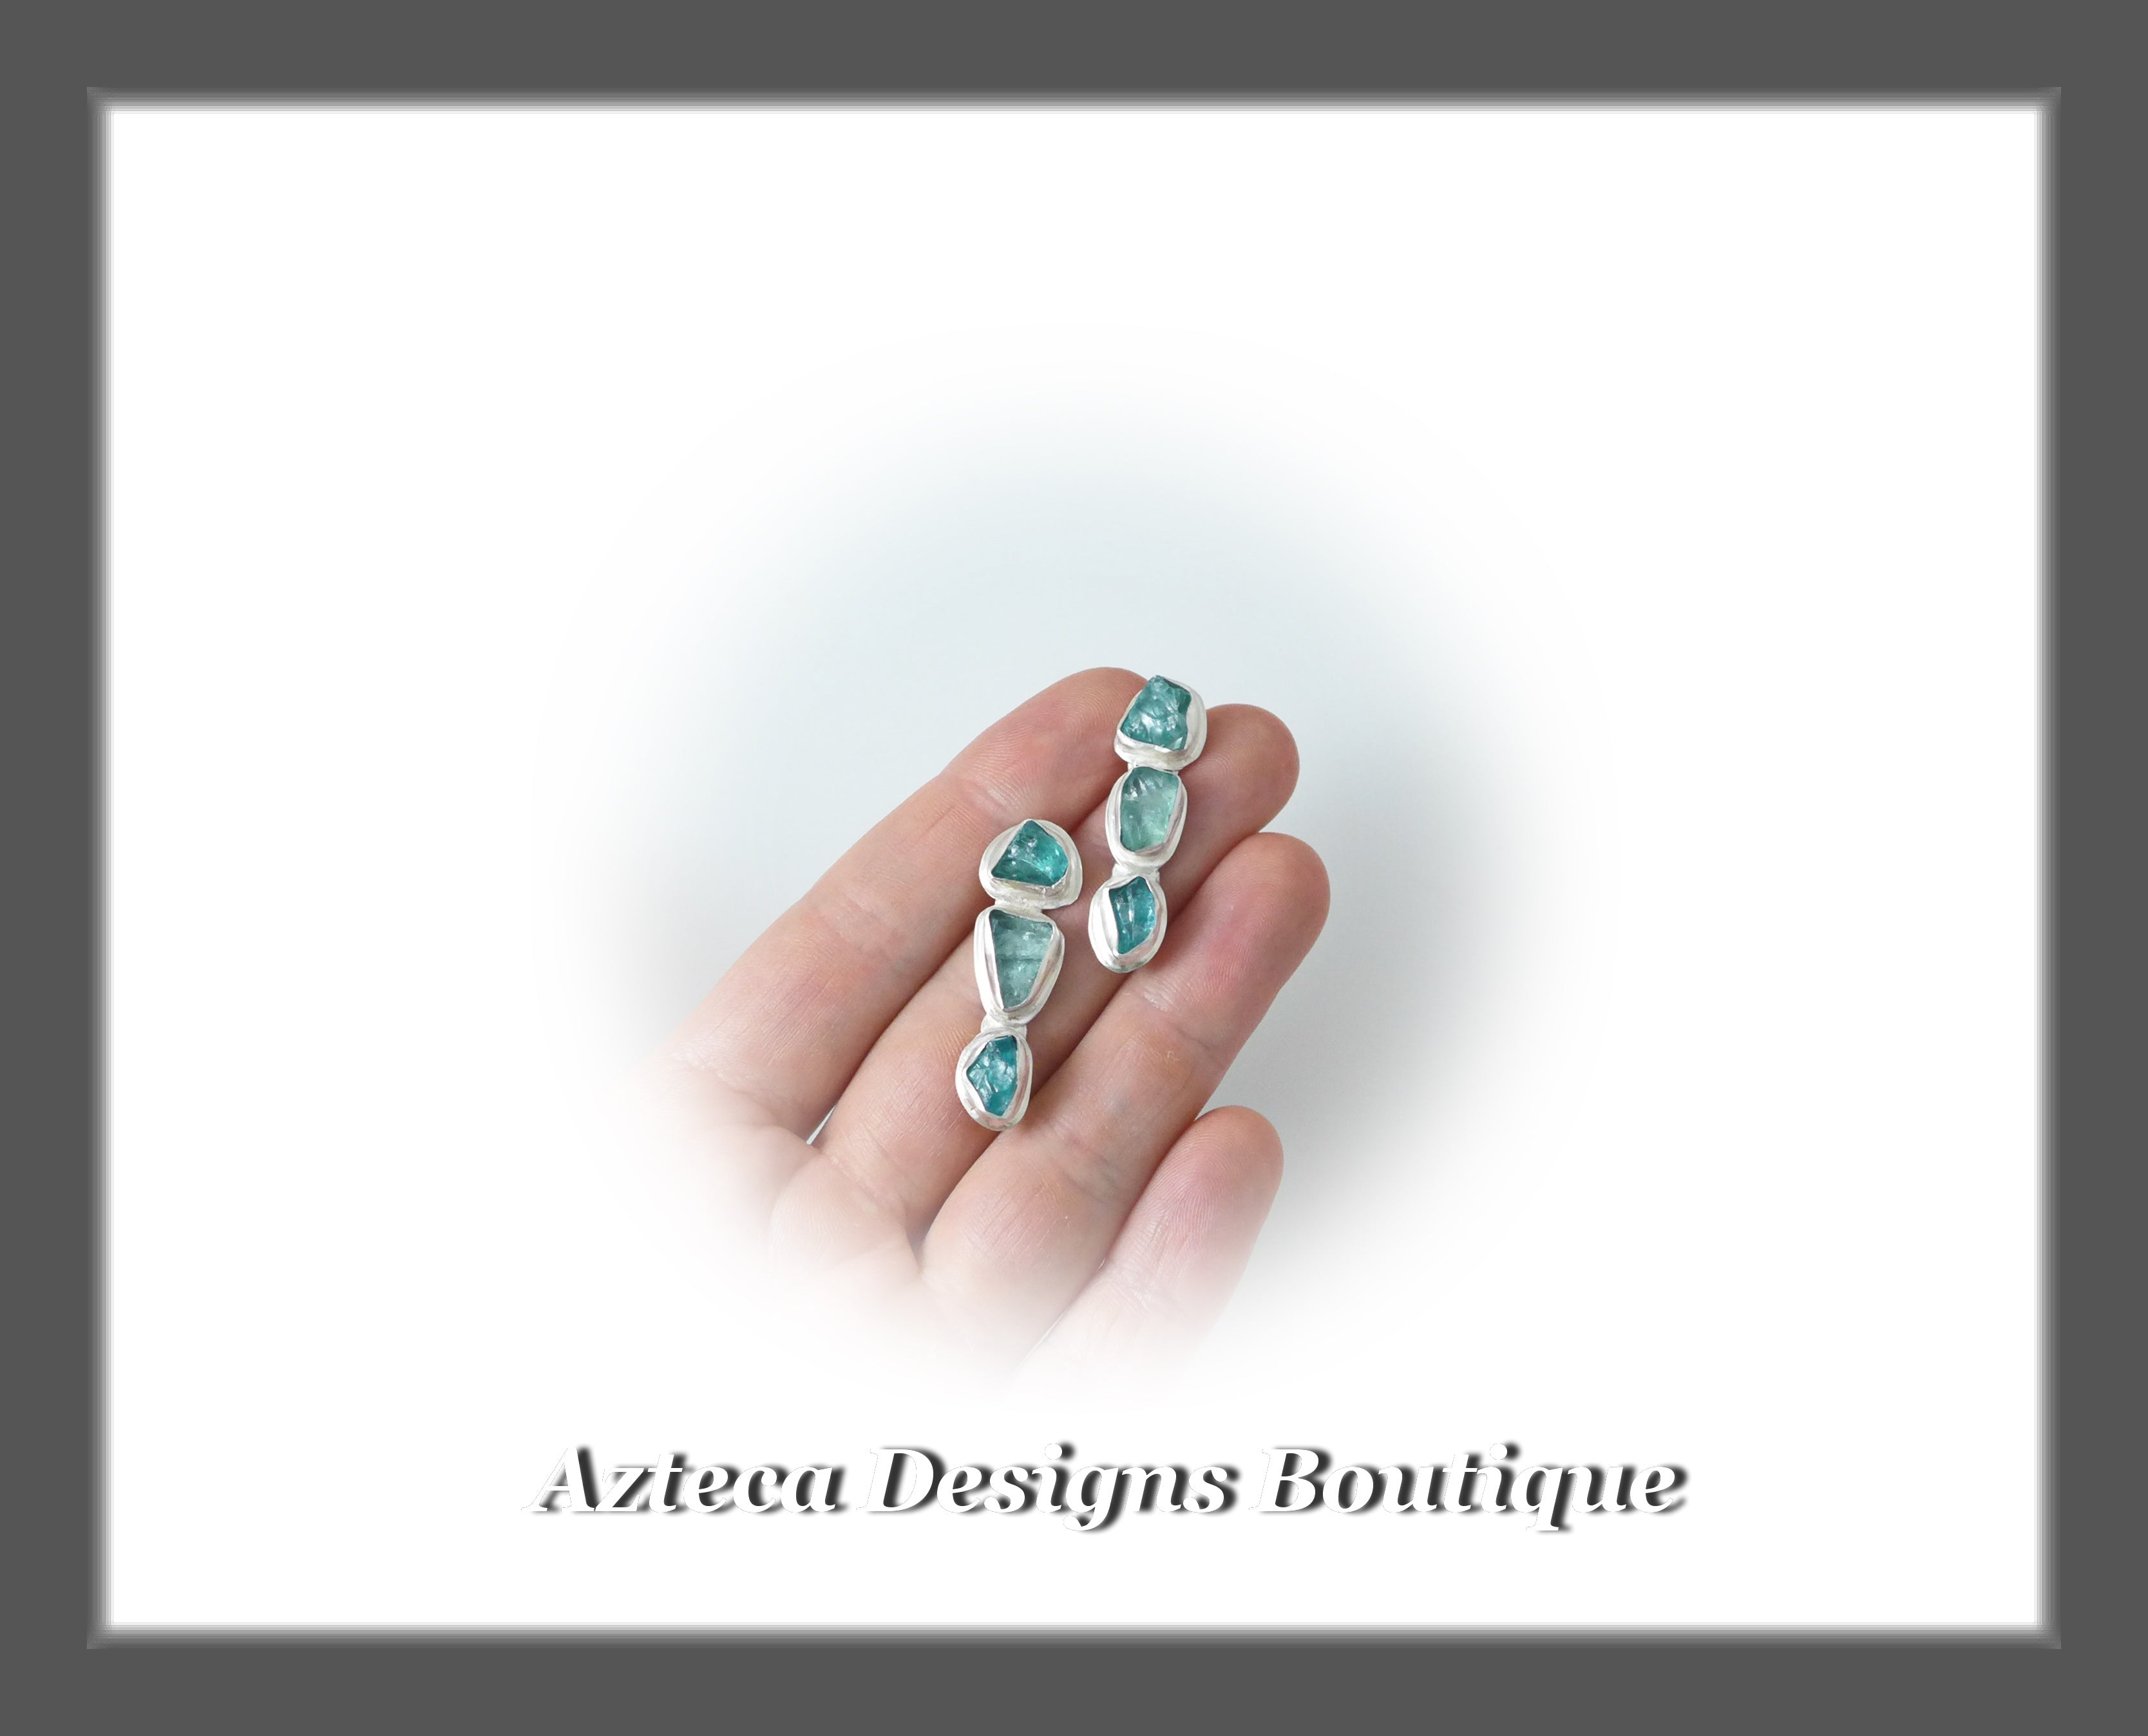 Raw Apatite Triple Crystal+Hand Fabricated Sterling Silver+Post Earrings